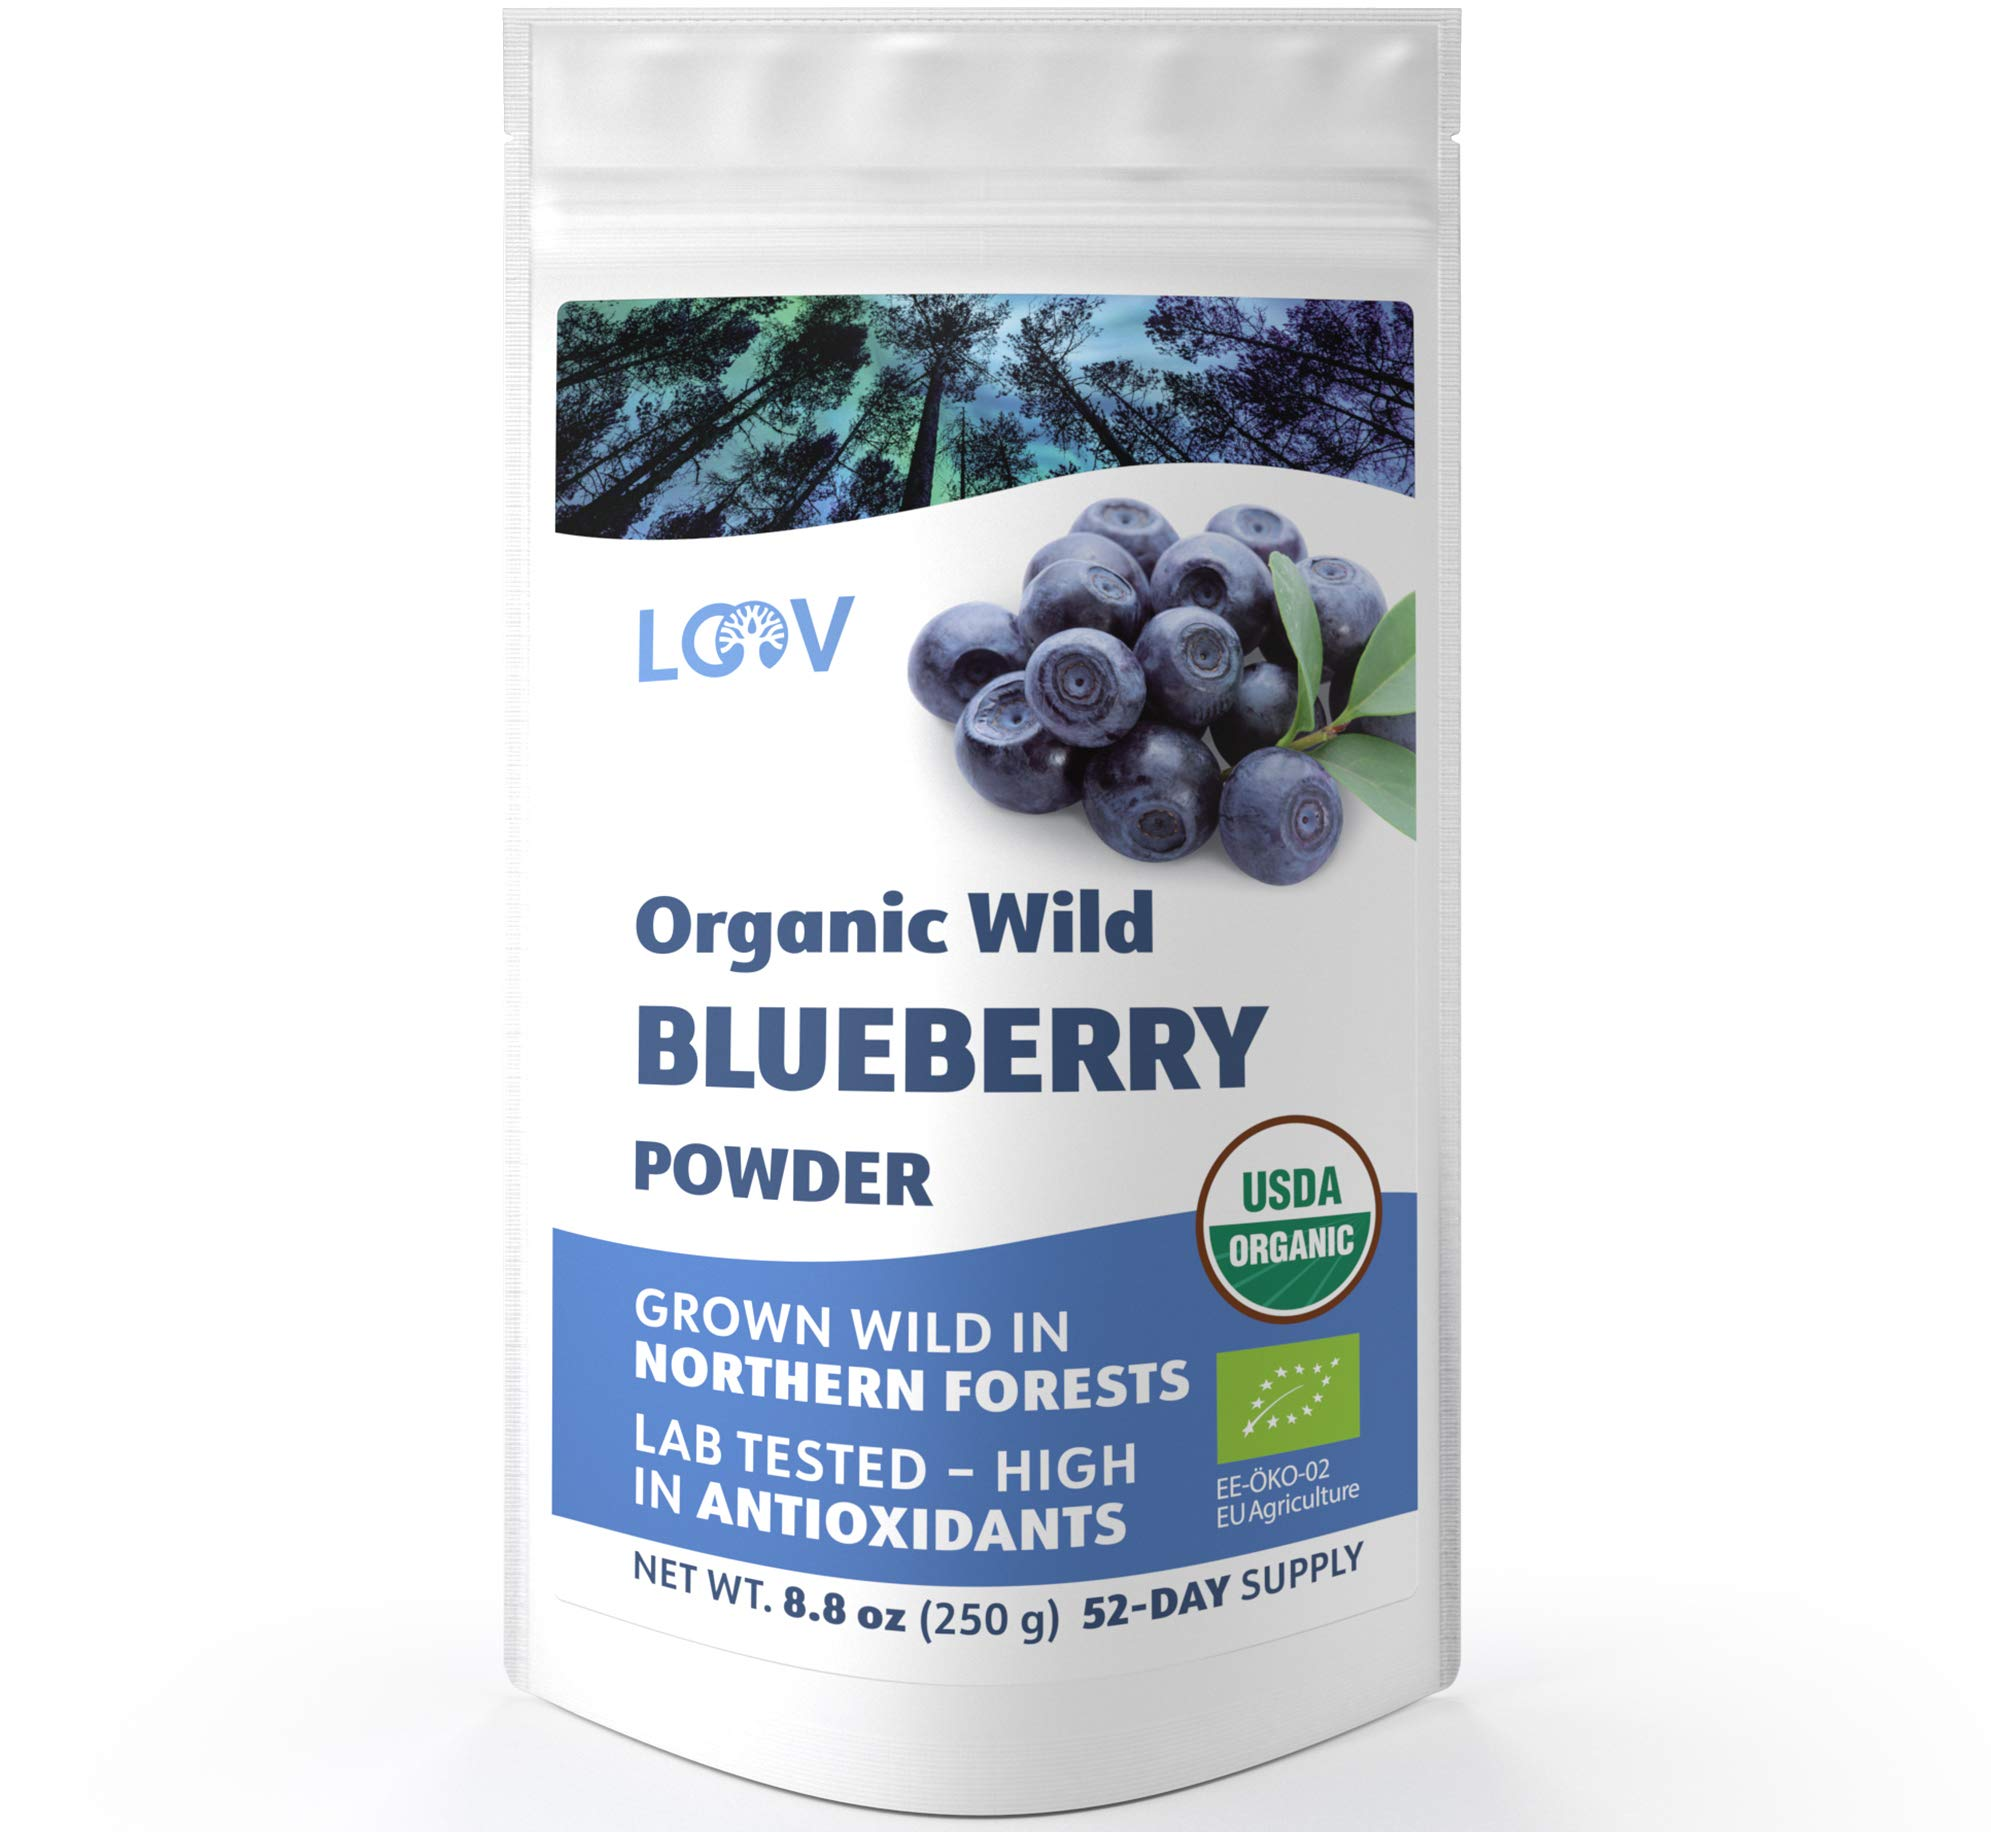 Organic Wild Blueberry Powder, Wild-crafted from Nordic Forests, 100% Whole Fruit Bilberry, 52-day Supply, 8.8 oz, Freeze-dried and Powdered Wild Blueberries, High in Anthocyanins, Free Recipe Book by LOOV